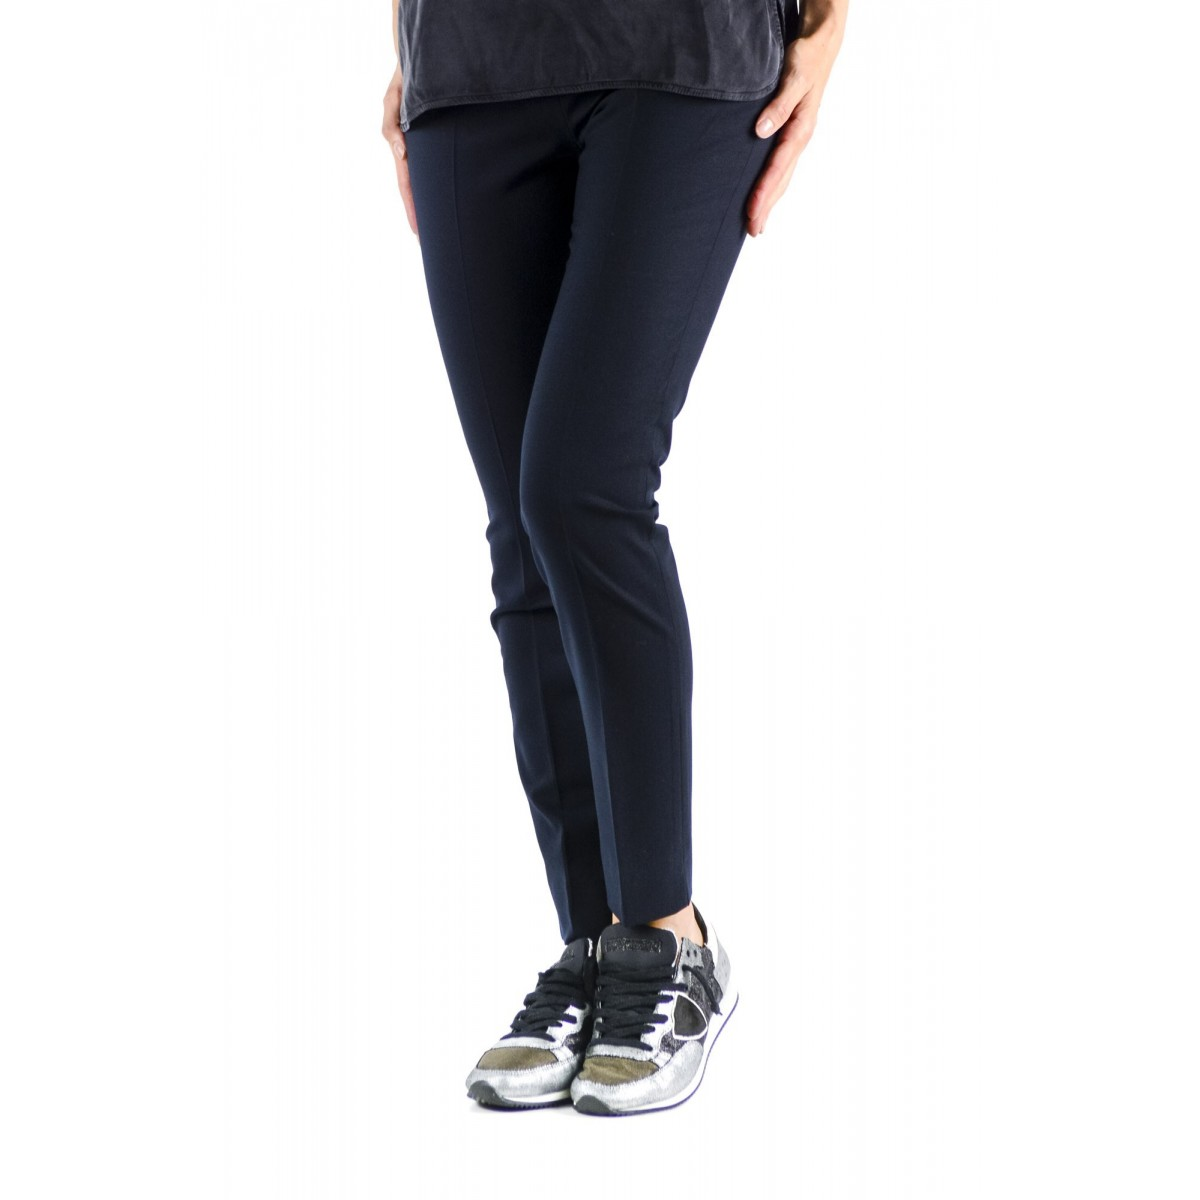 Trousers Incotex Woman - 171499 D1149 Arlet 820 - Blu